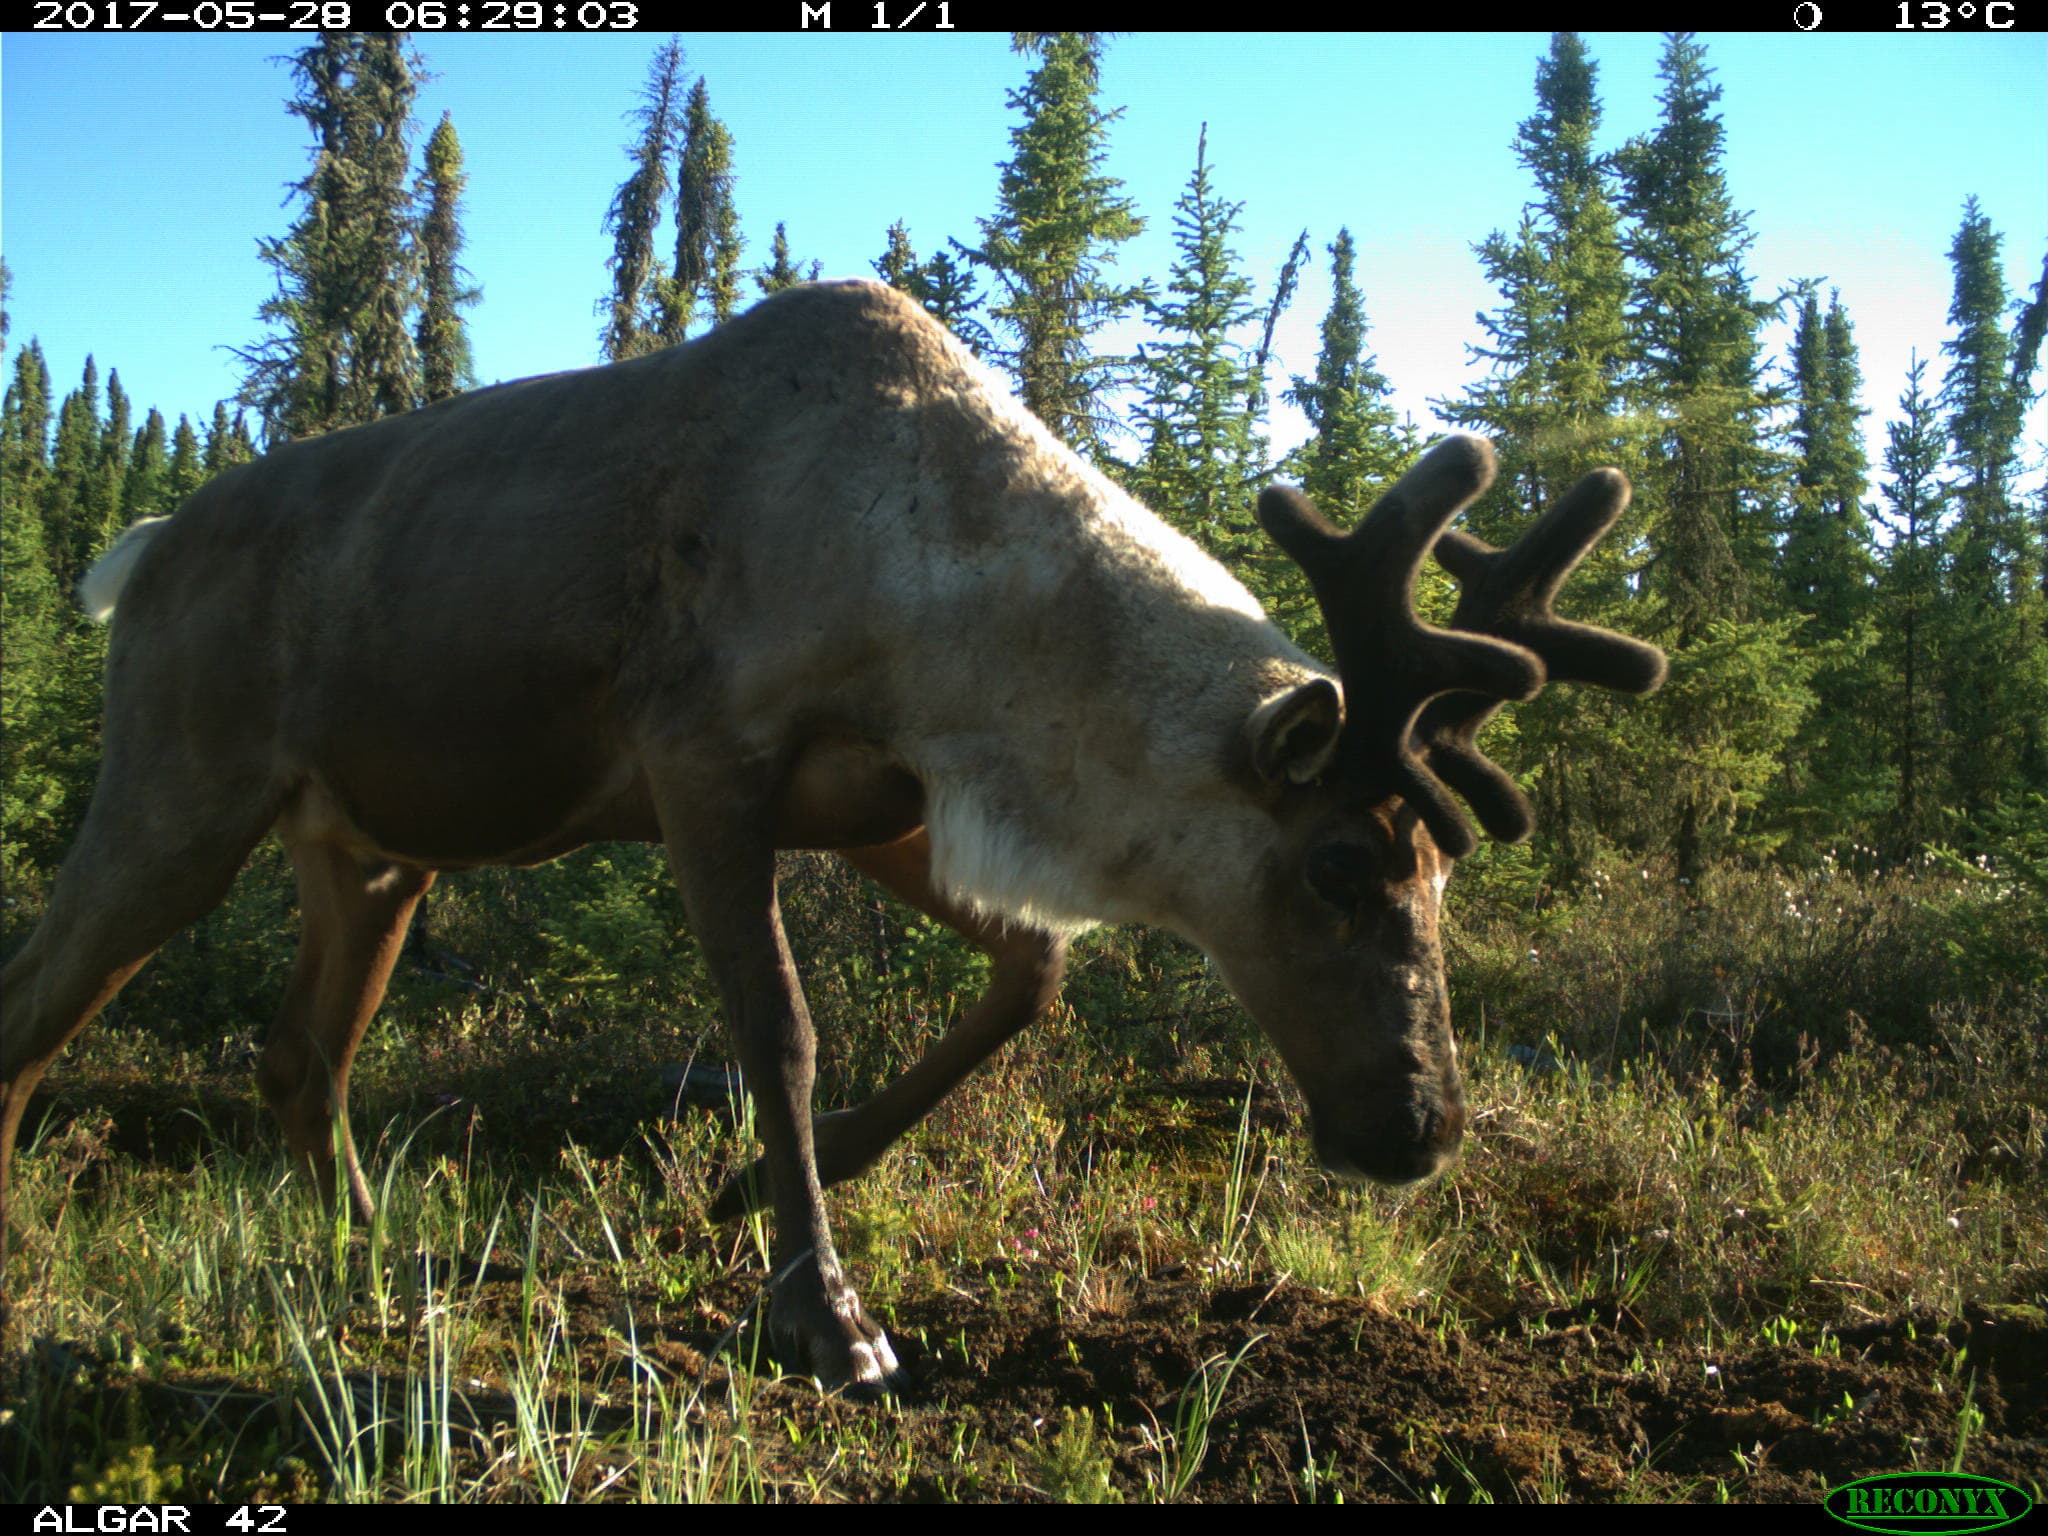 Woodland caribou recorded as part of the photographic monitoring program.